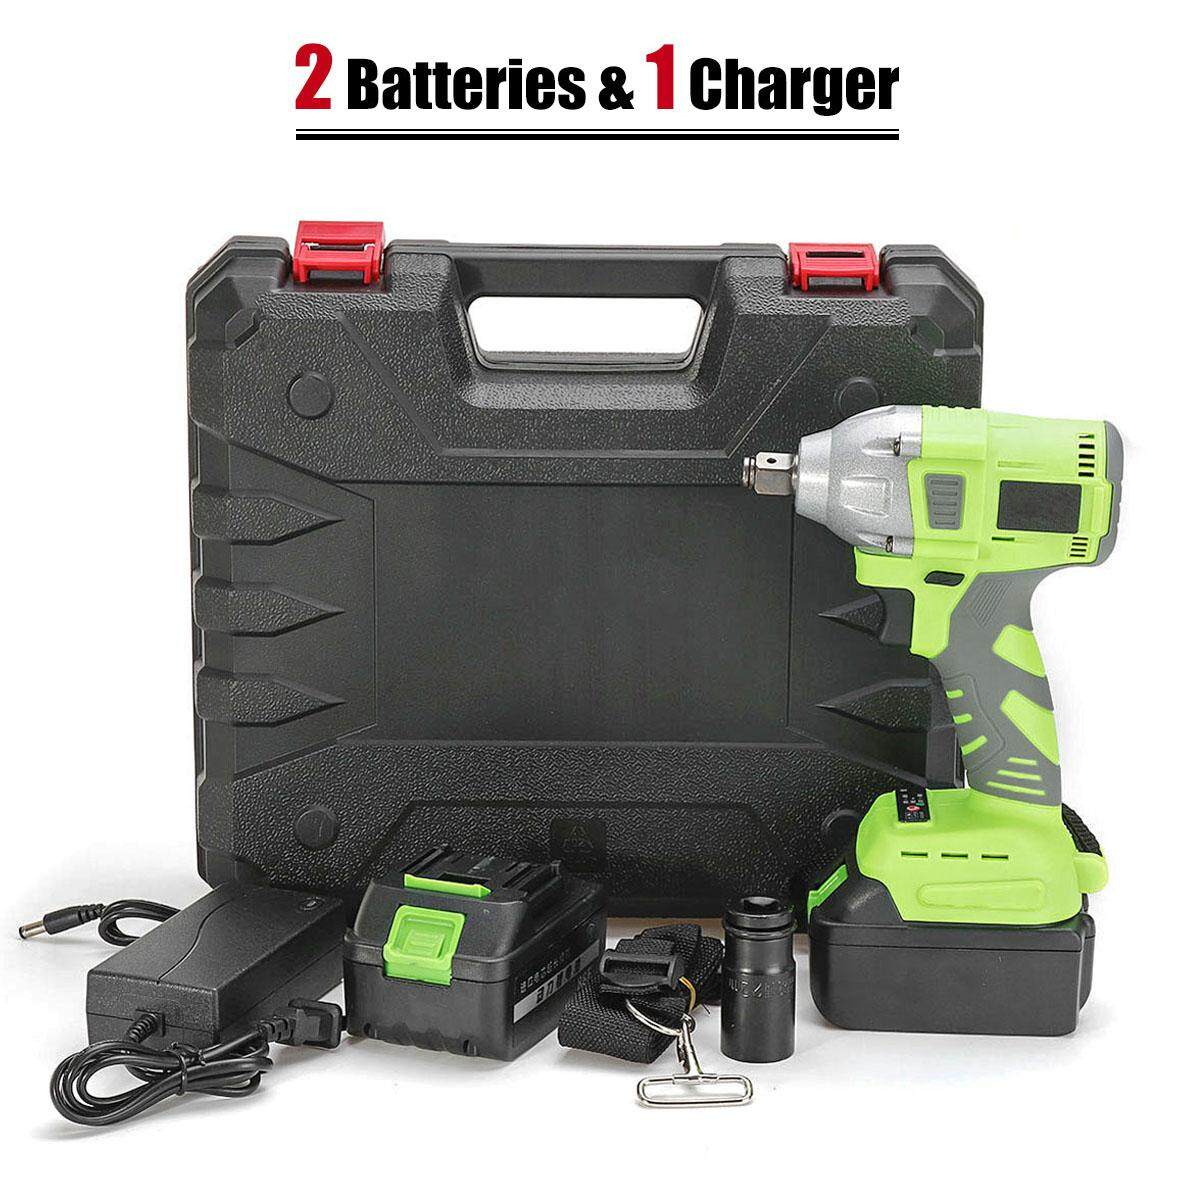 Wireless Electric Impact Wrench 320Nm Nutrunner 88F 20000mAh Li-ion Battery